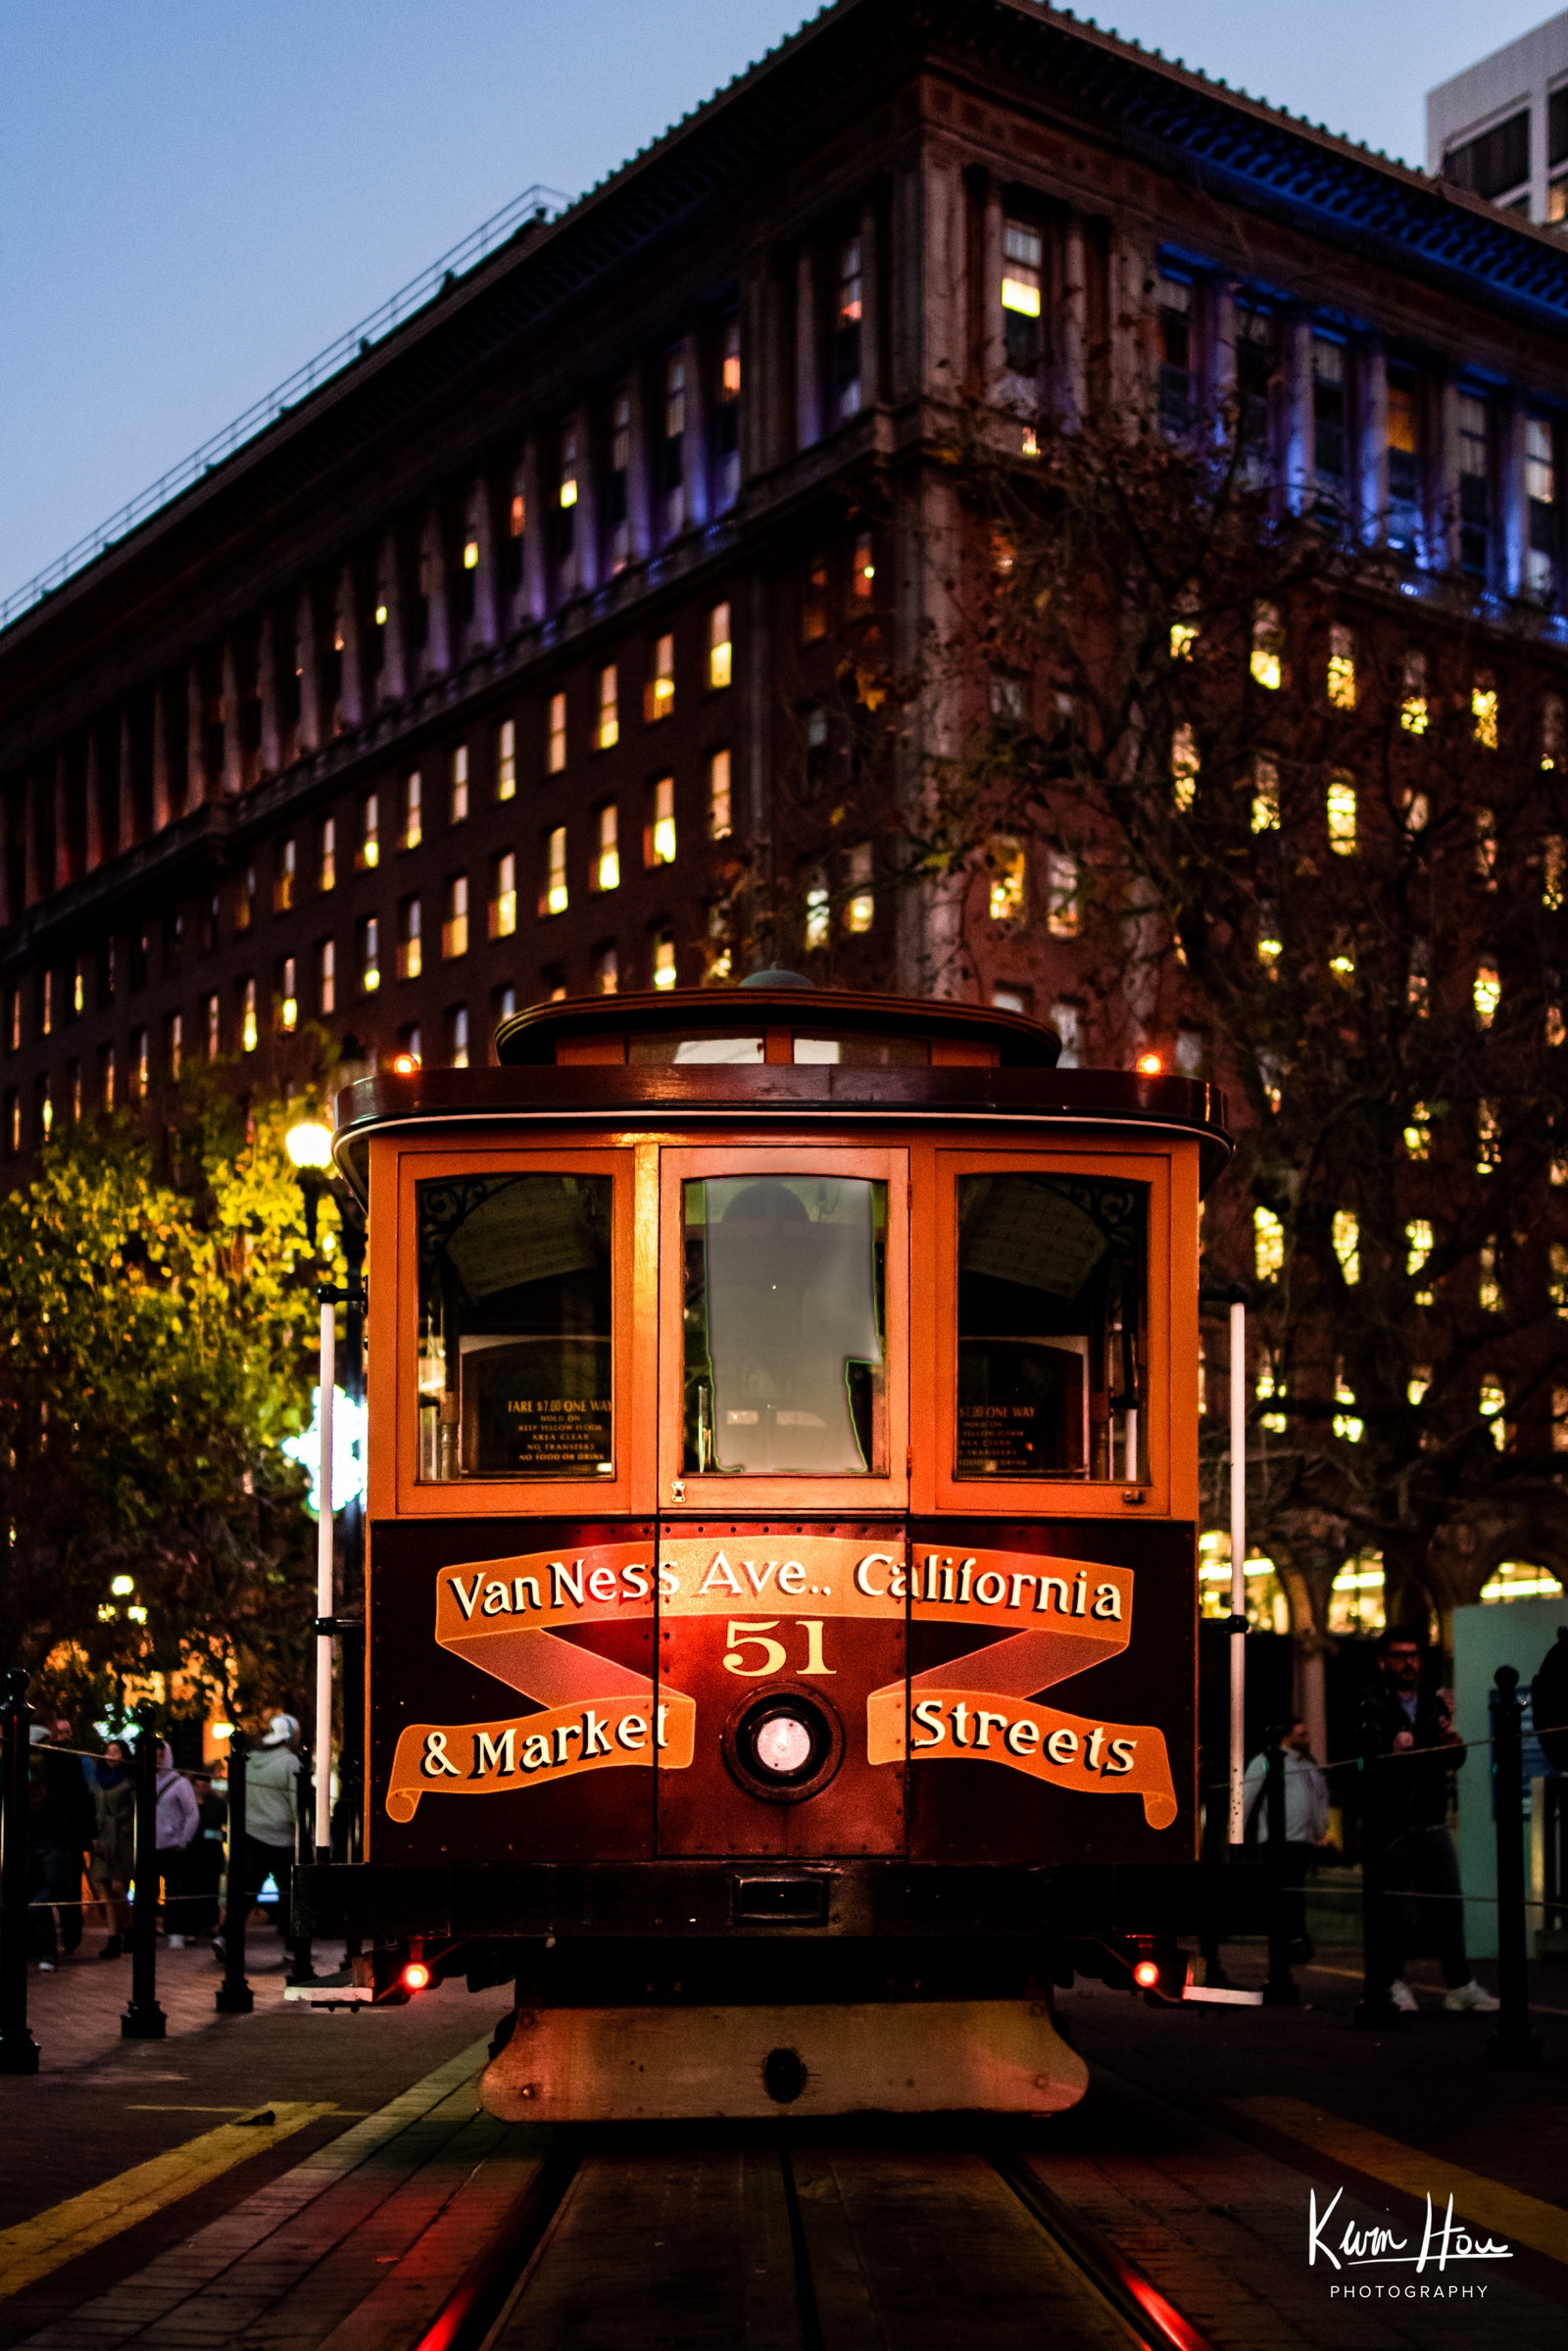 San Francisco Trolley at Night